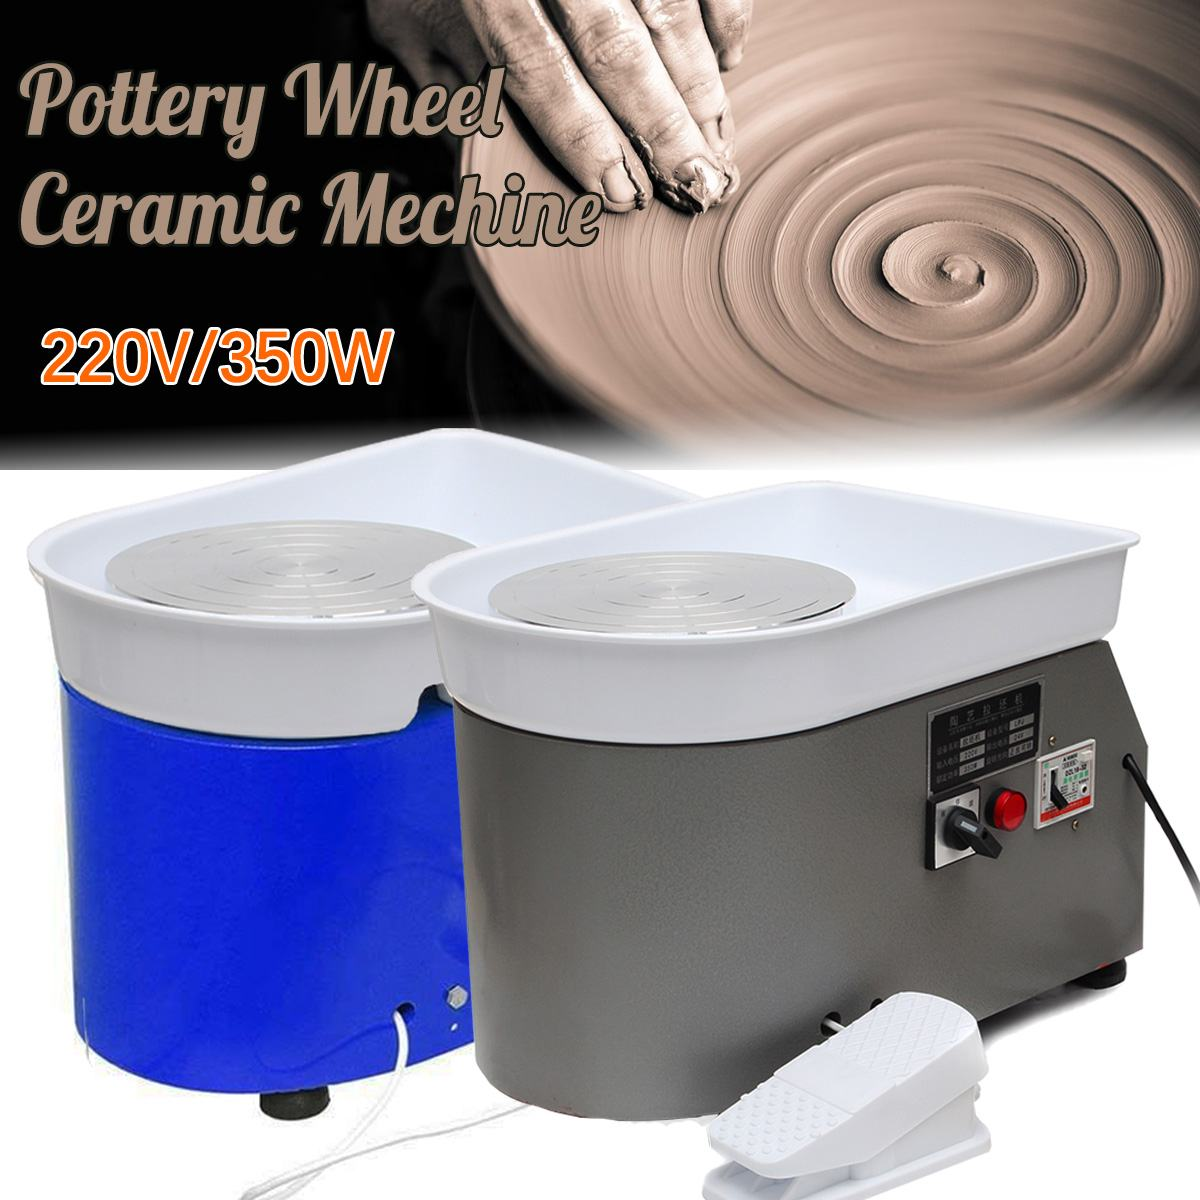 Blue Mini Electric Pottery Wheel Machine Small Pottery Forming Machine with Tray for DIY Ceramic Work Clay Art Craft